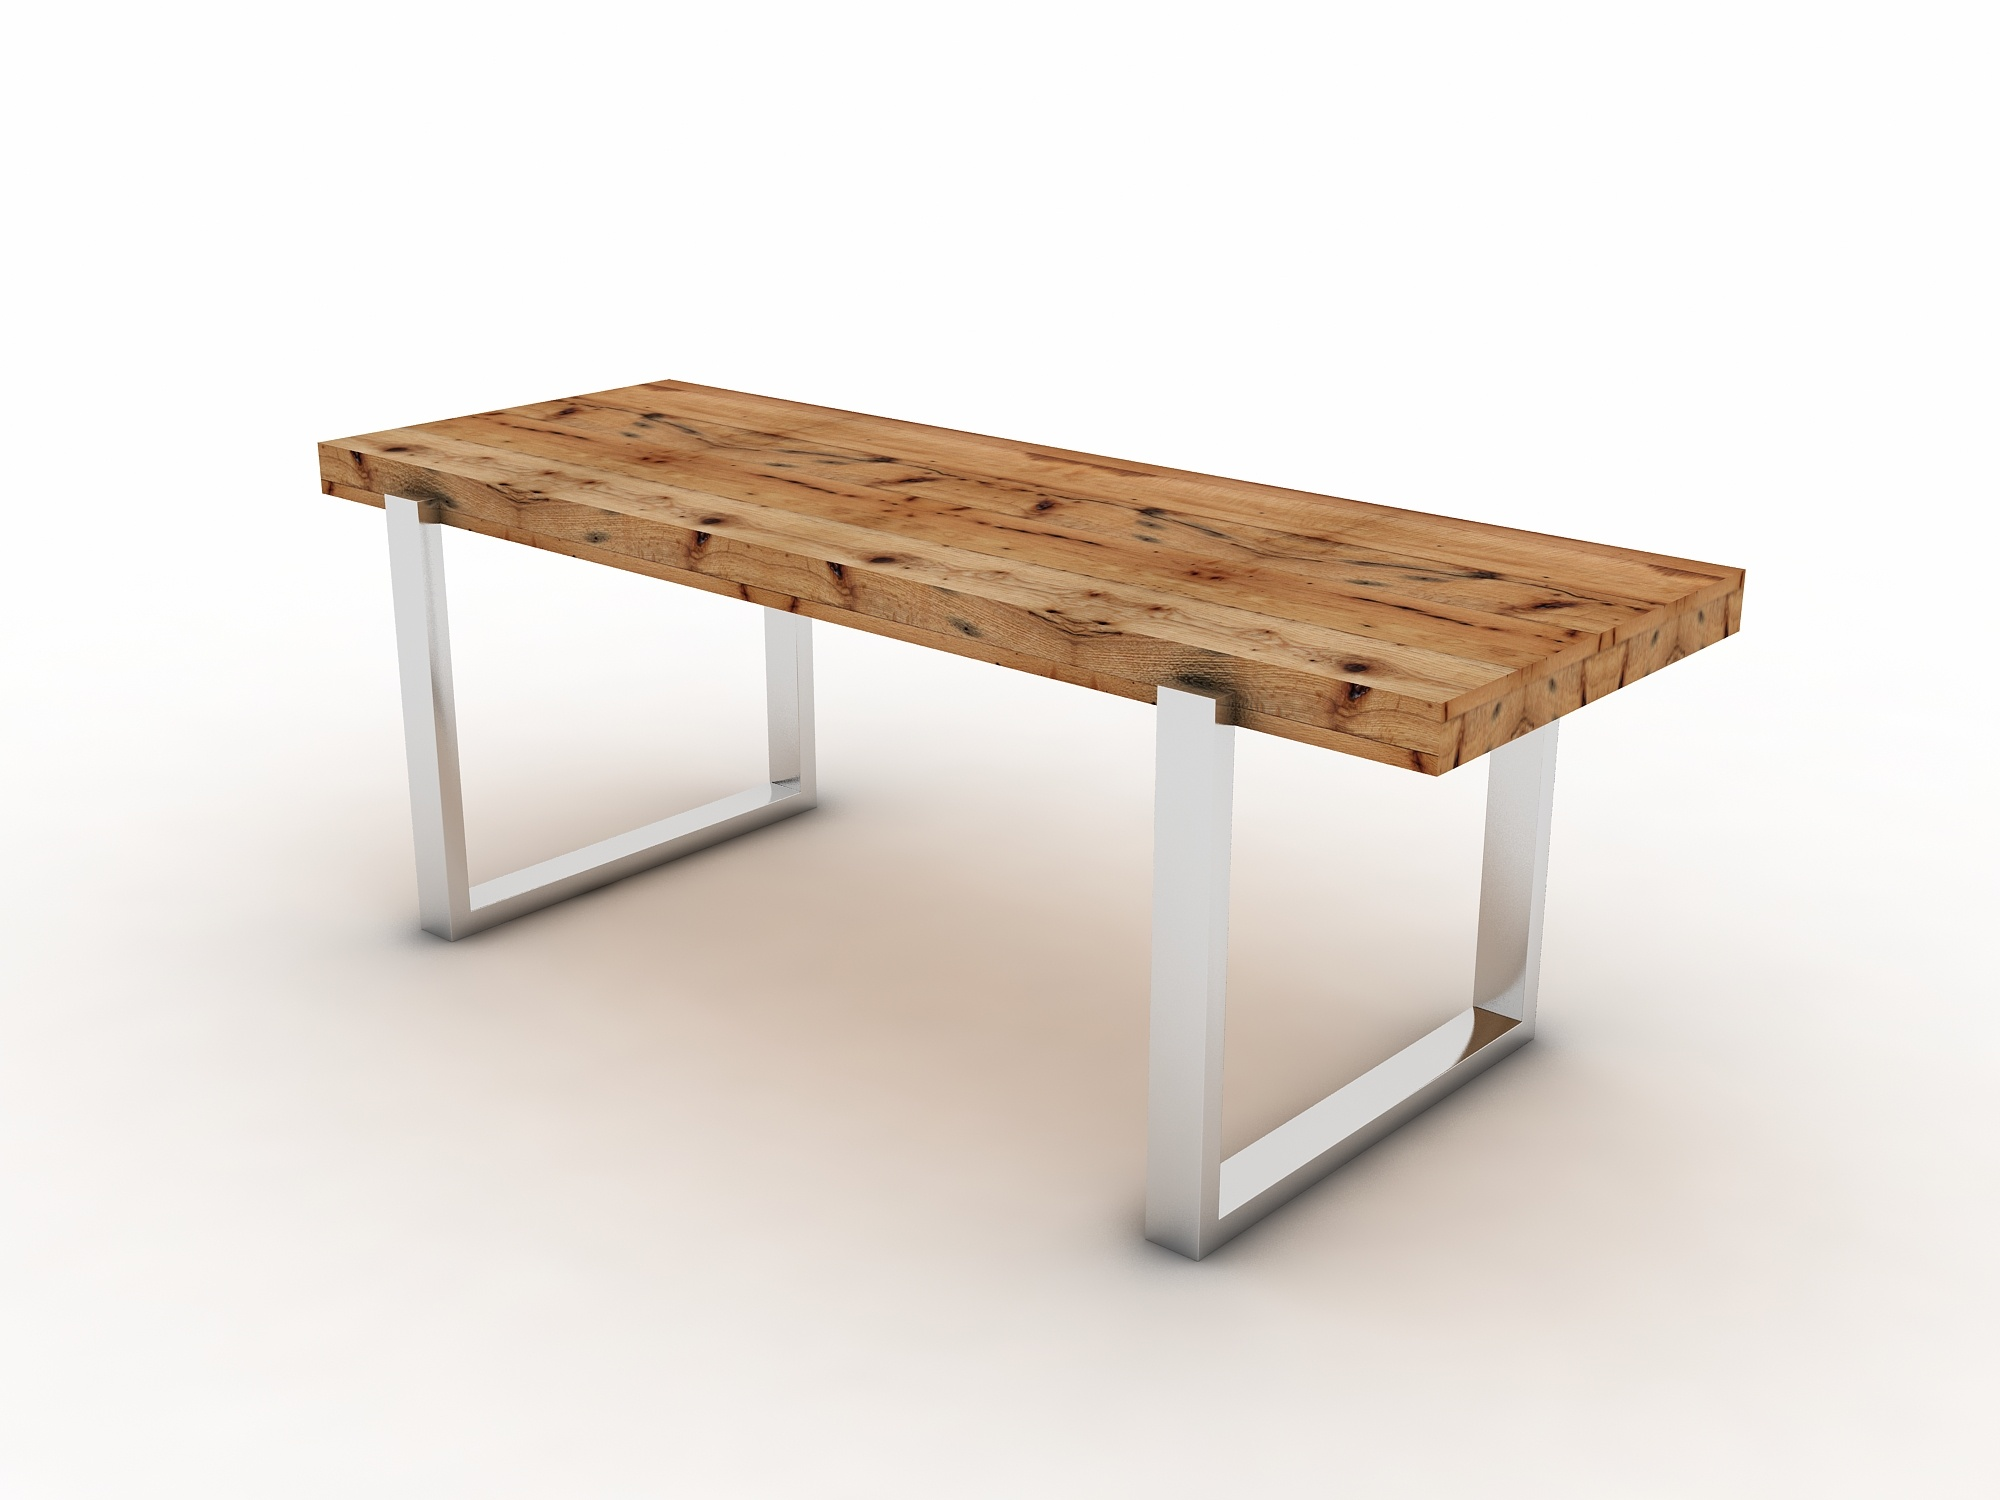 . Which is the best CAD software for furniture design or carpentry